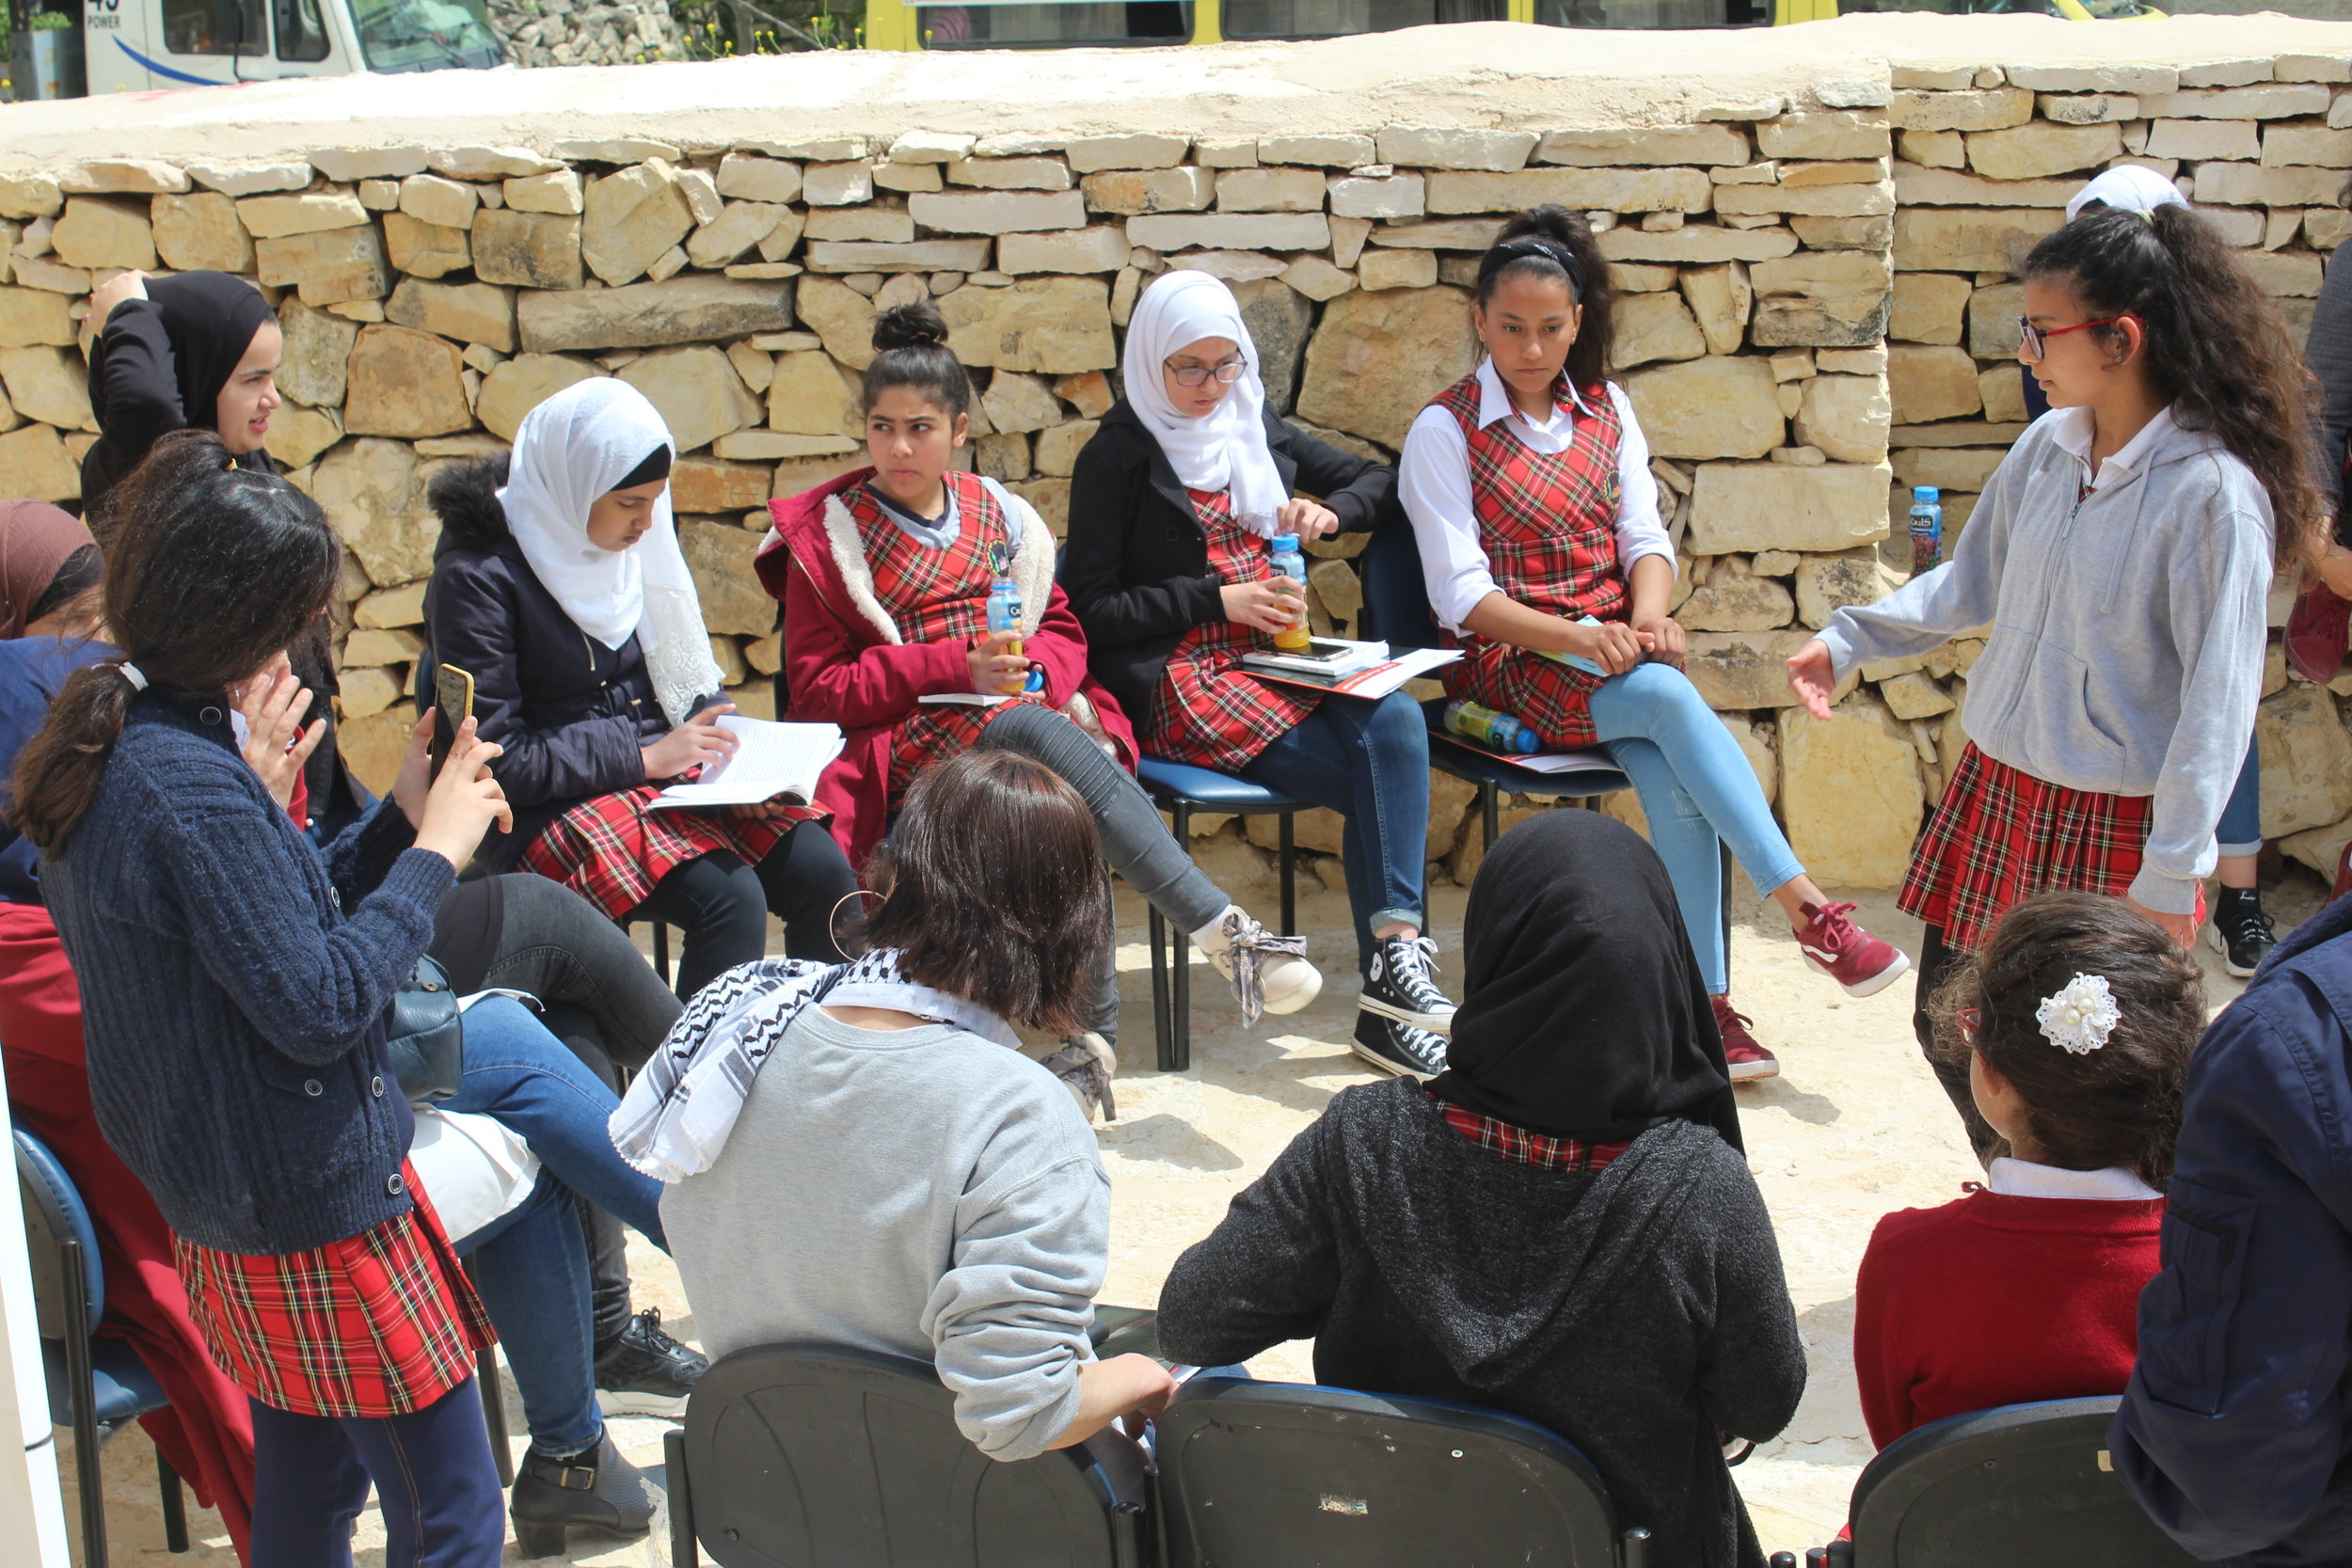 Girls participating in the Reading Event.